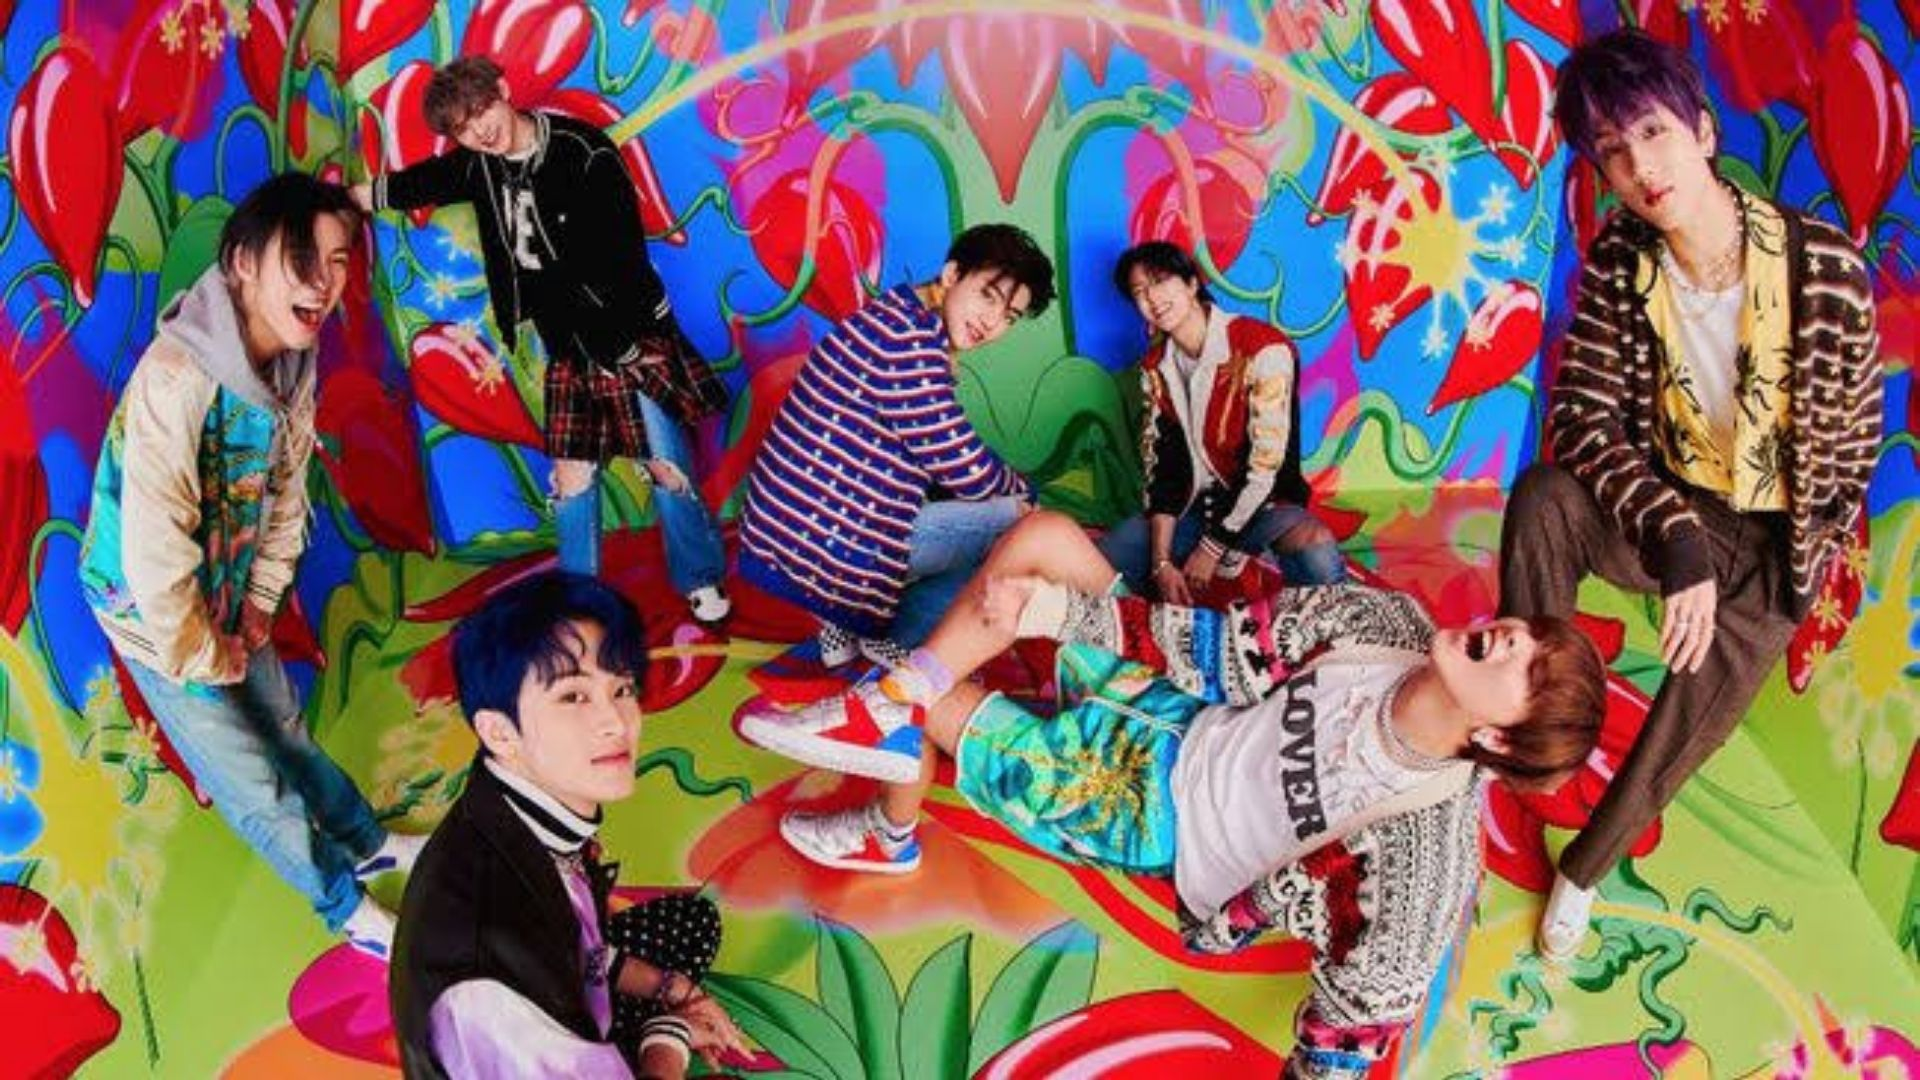 NCT Dream the Highest Album Sales in the First Half of 2021